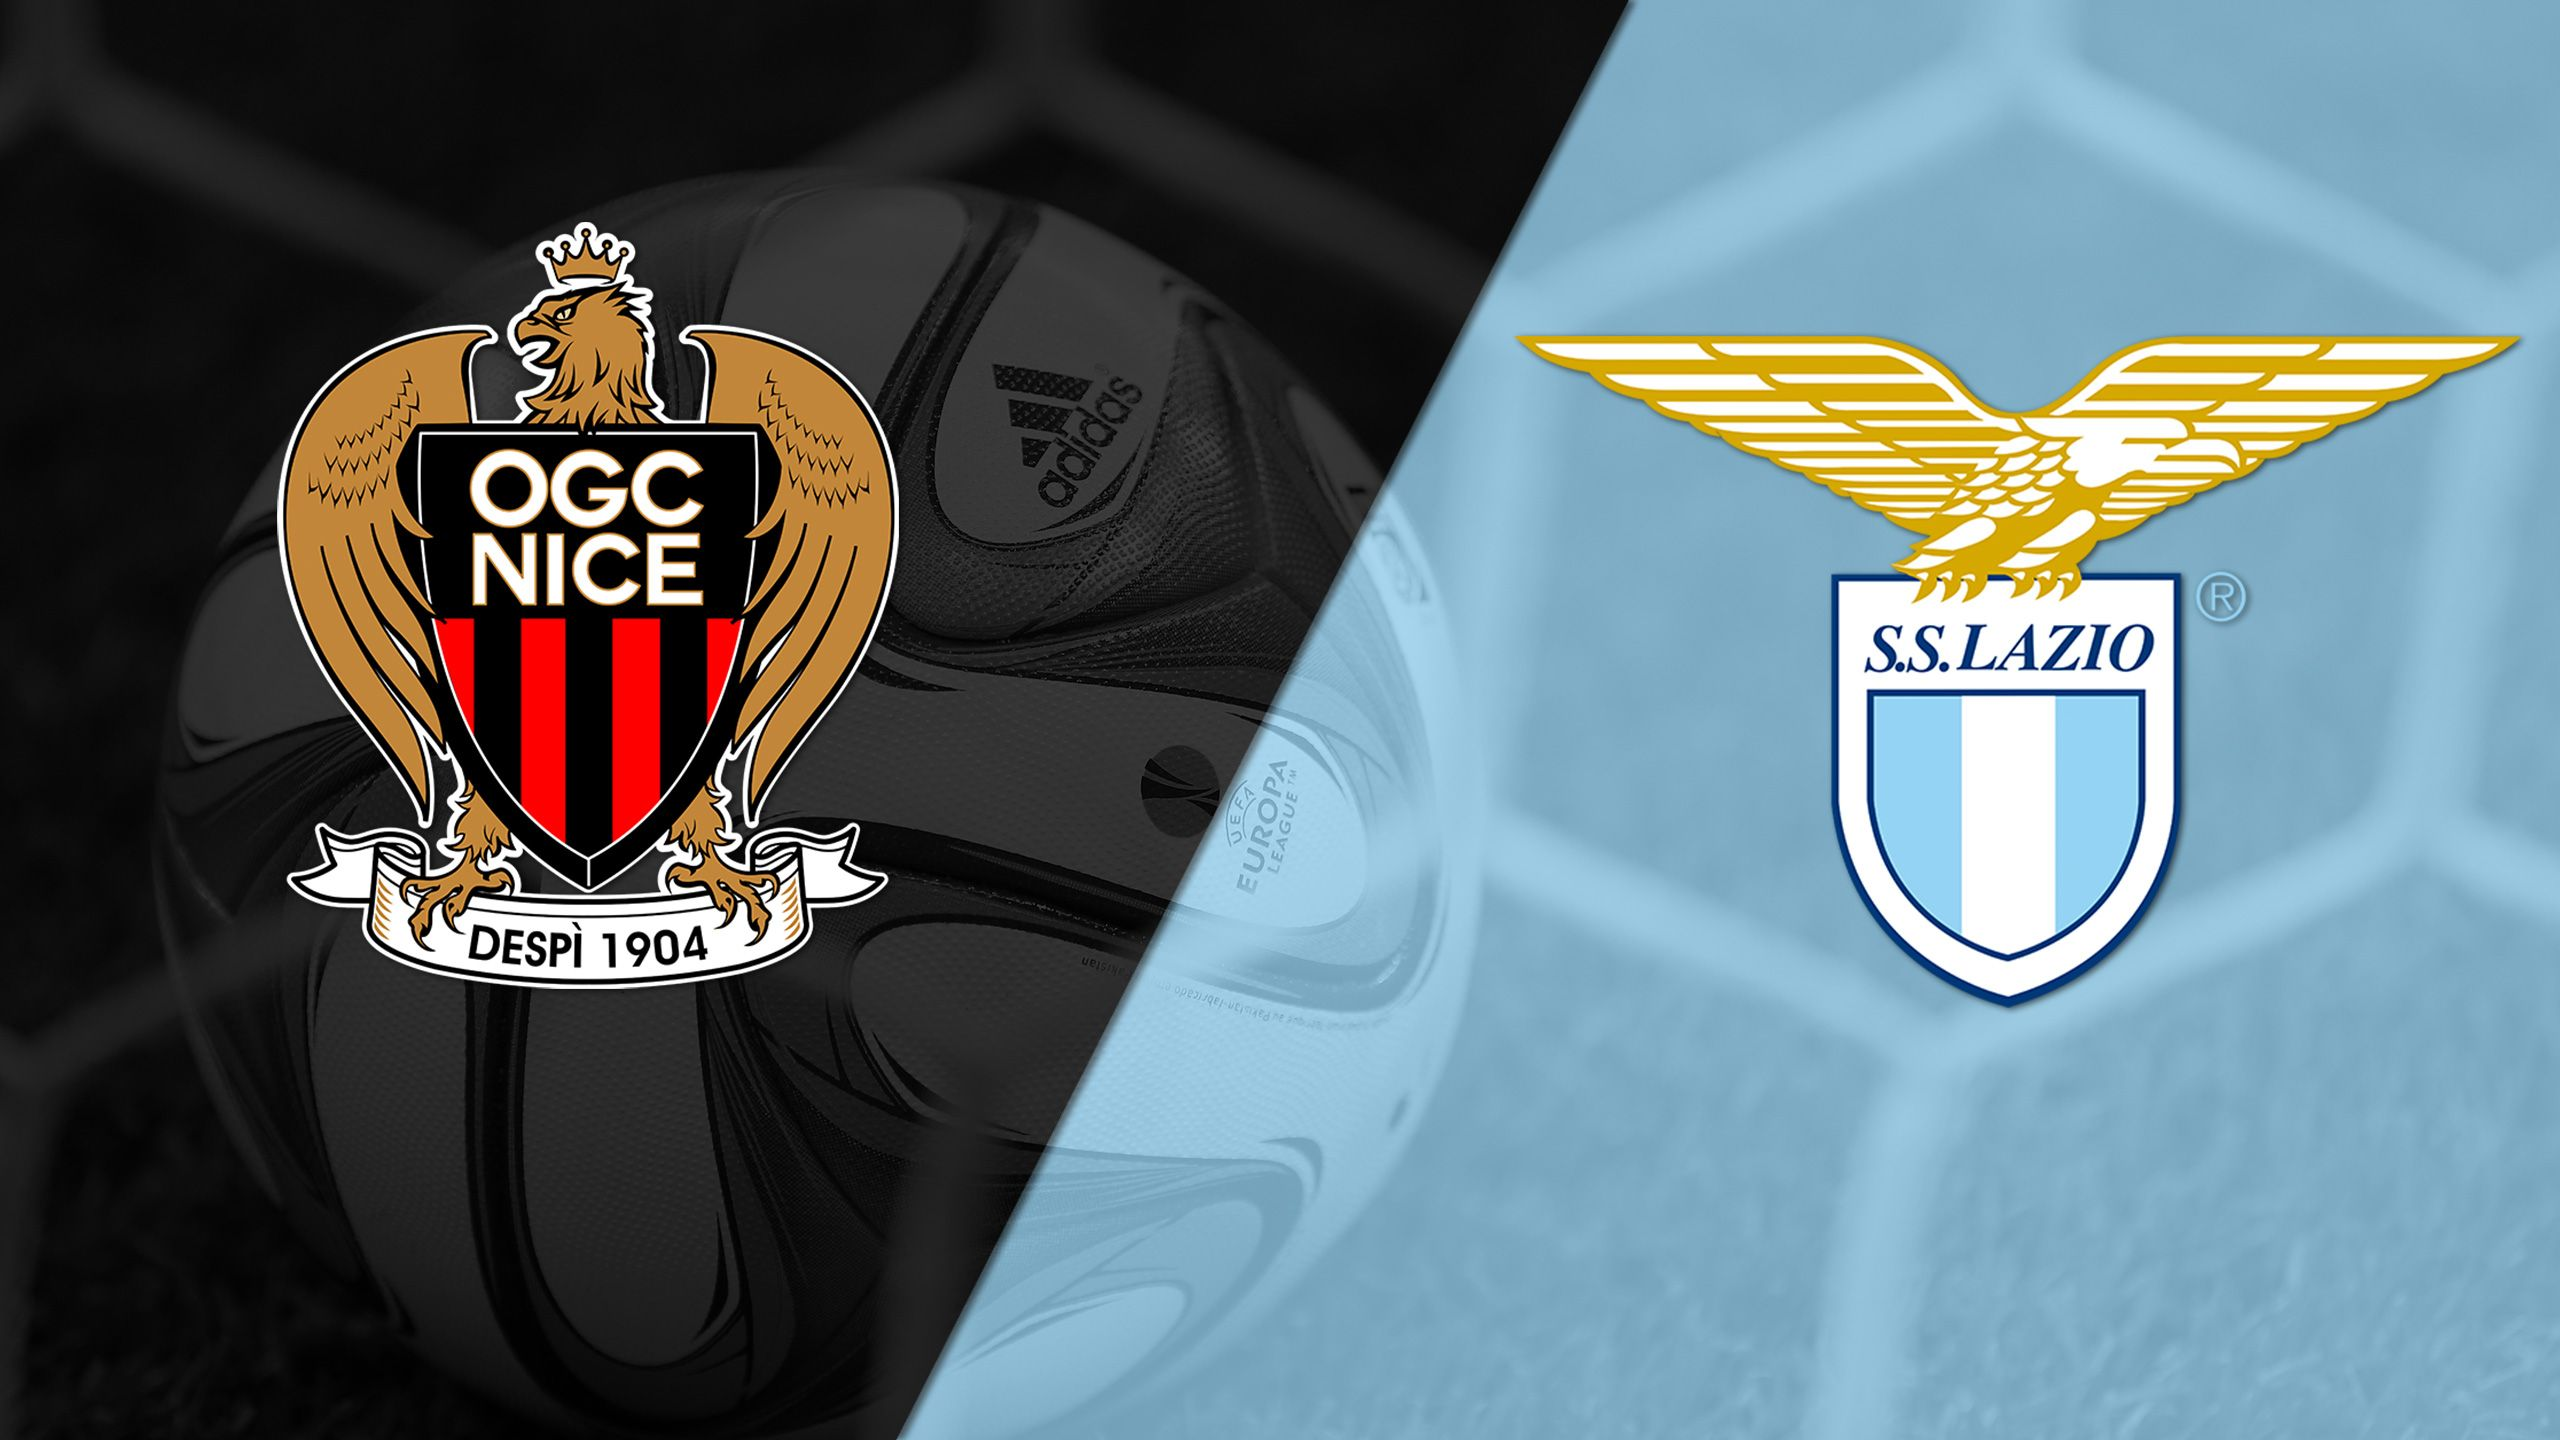 In Spanish - OGC Nice vs. Lazio (Group Stage #3) (UEFA Europa League)